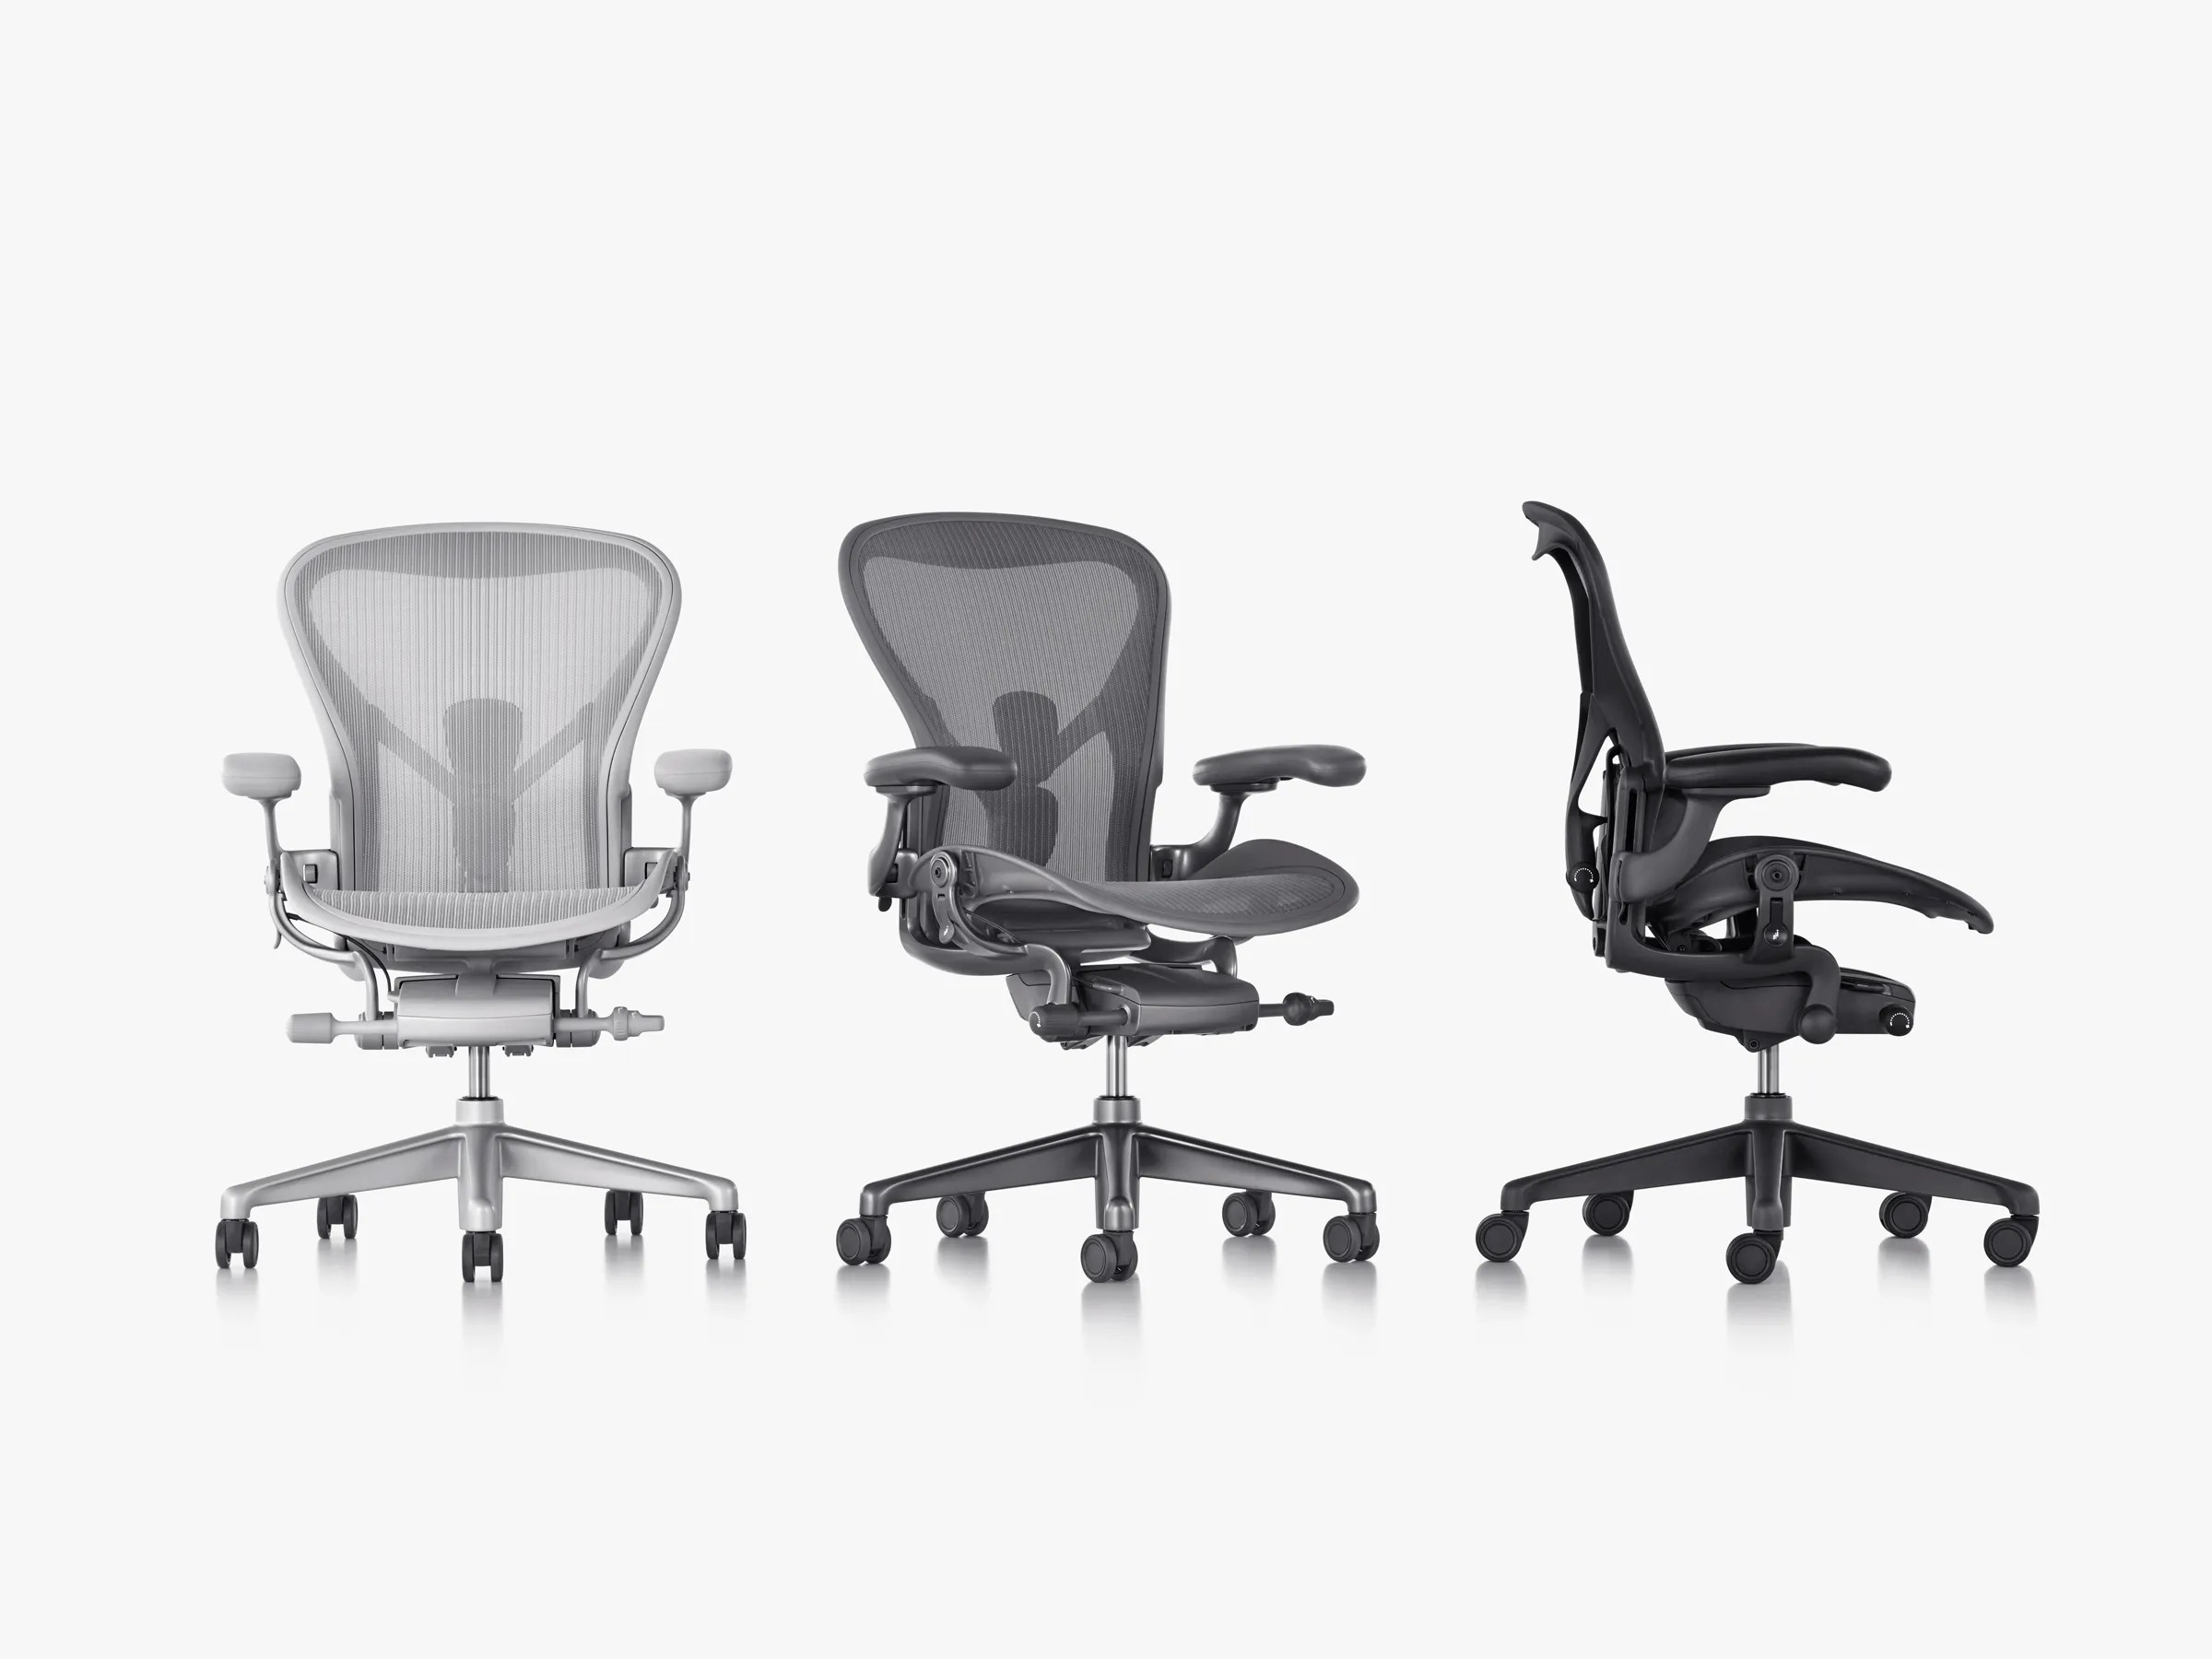 Aaron Chair Herman Miller Just Redesigned Its Iconic Aeron Chair Wired